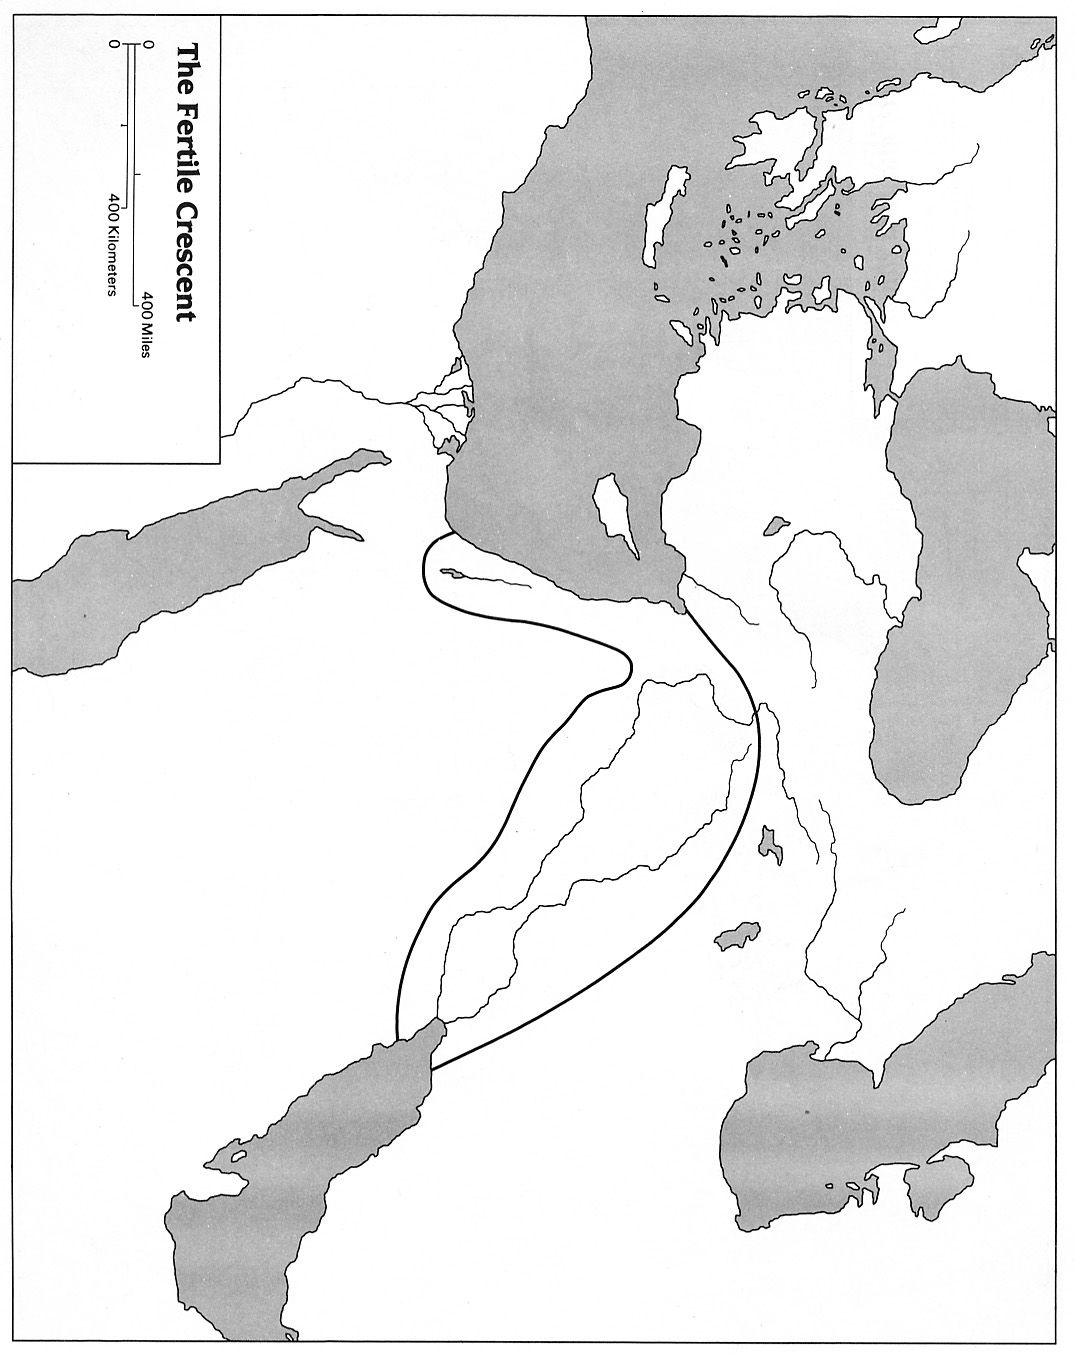 Blank Map Of Mesopotamia For Labeling